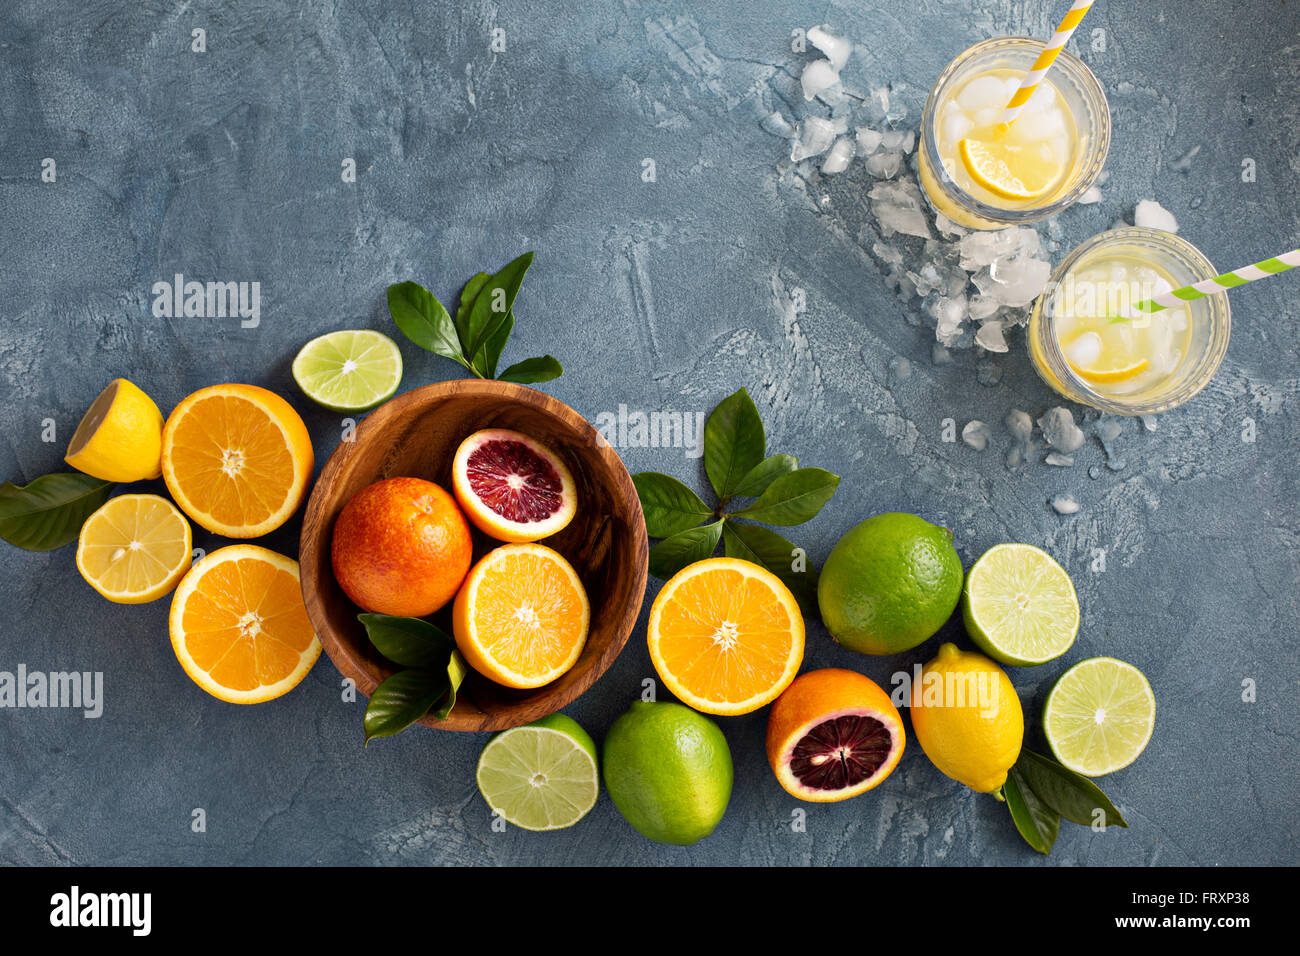 Citrus fruits background with oranges, limes and lemons - Stock Image